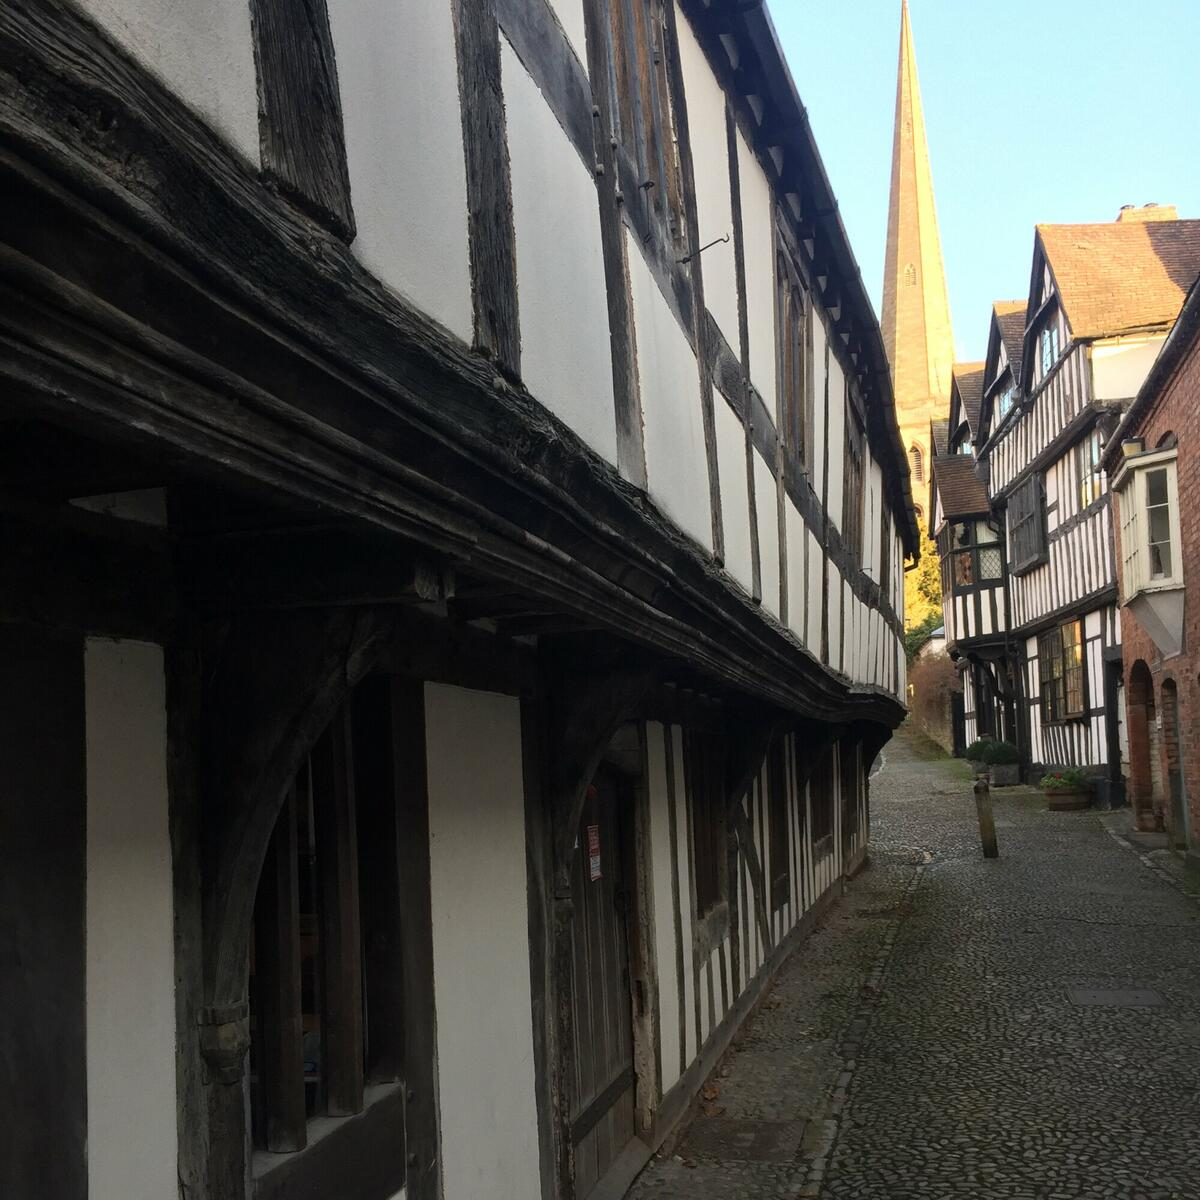 Looking up Church Lane, Old Grammar School on the left